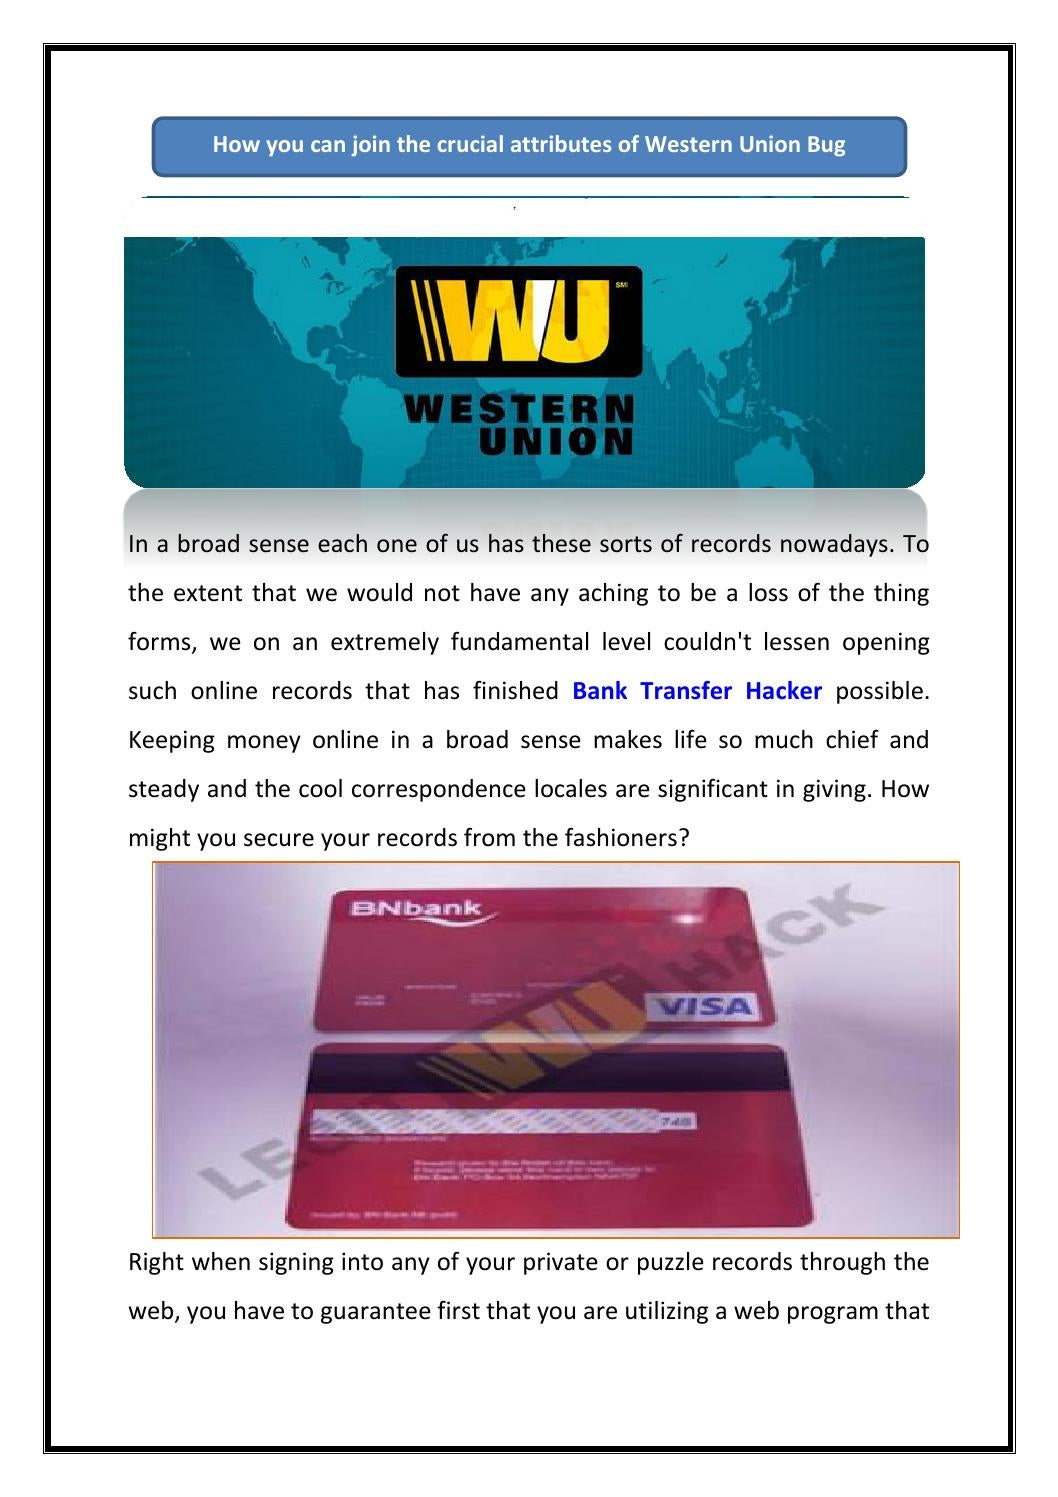 How you can join the crucial attributes of Western Union Bug